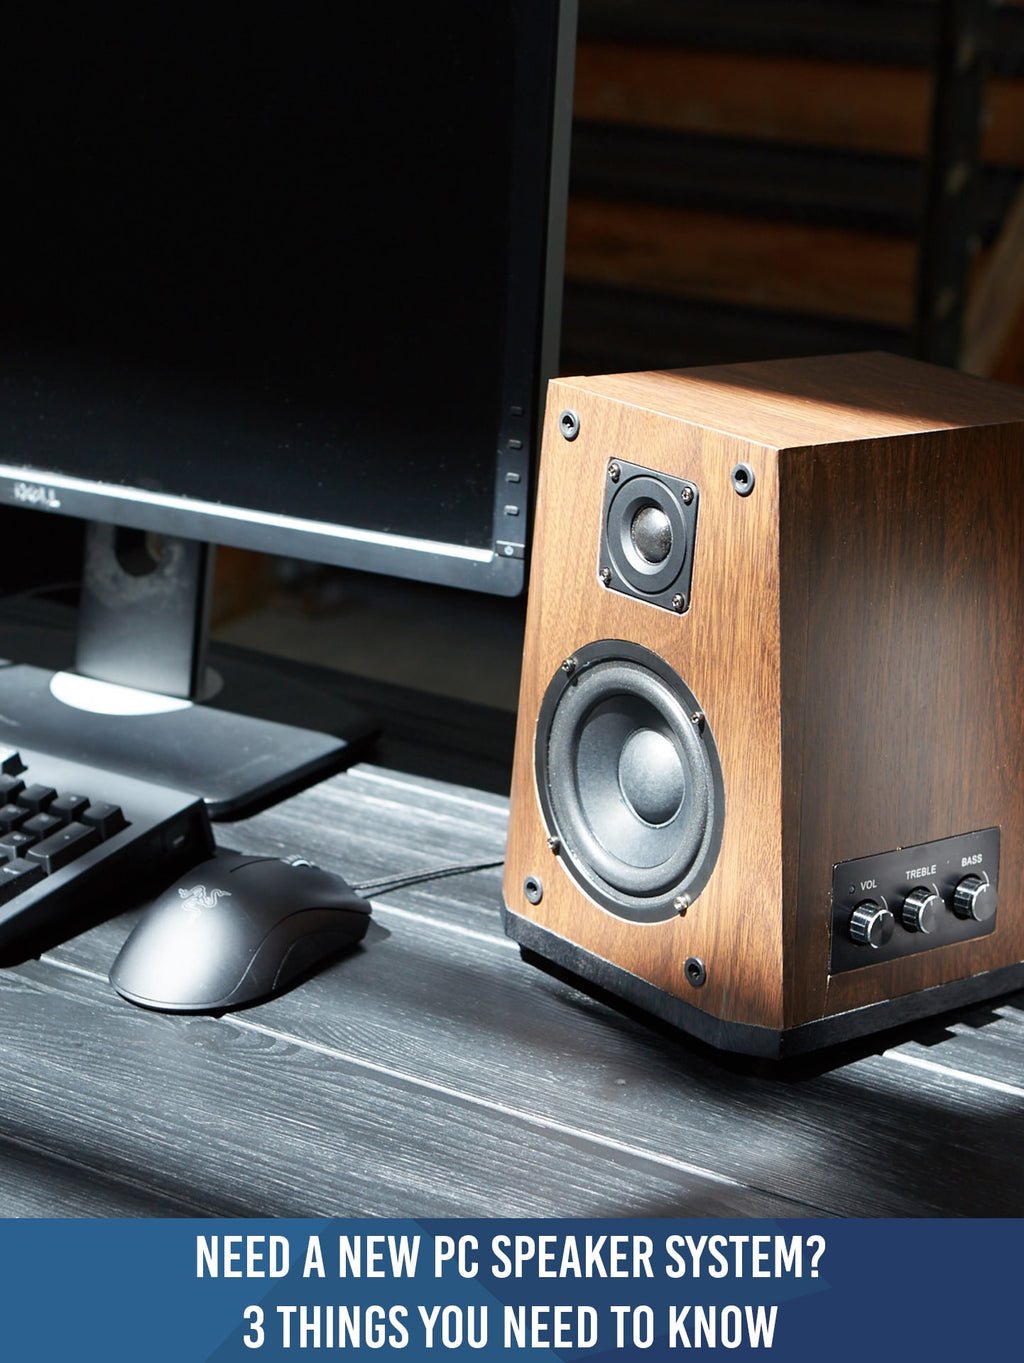 Need a New PC Speaker System? 3 Things You Need to Know